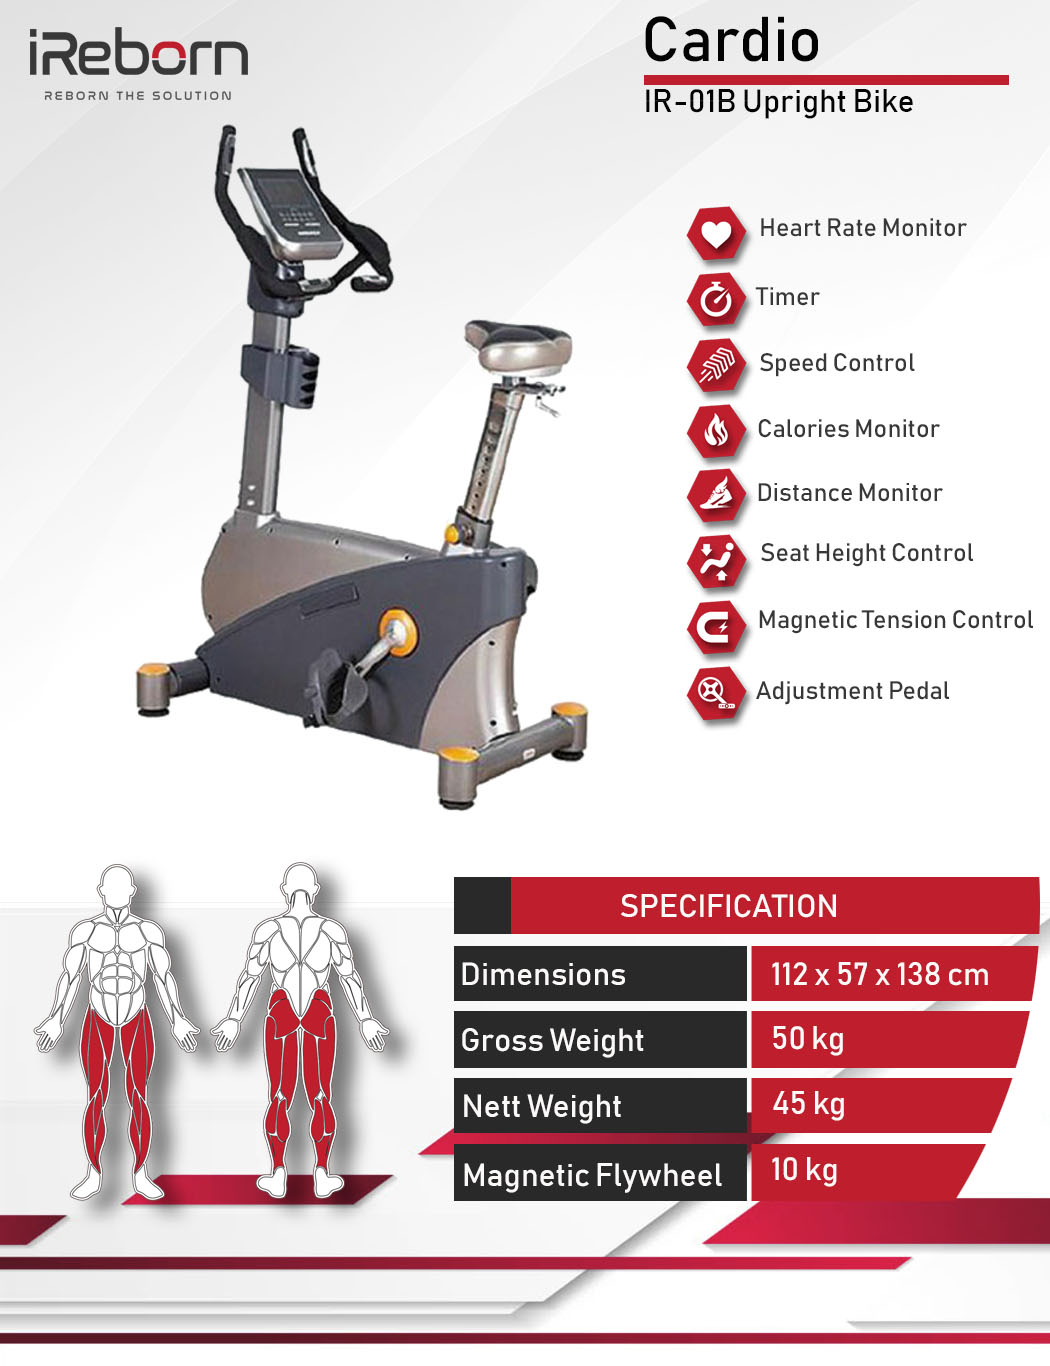 IR-01B Upright Bike 10